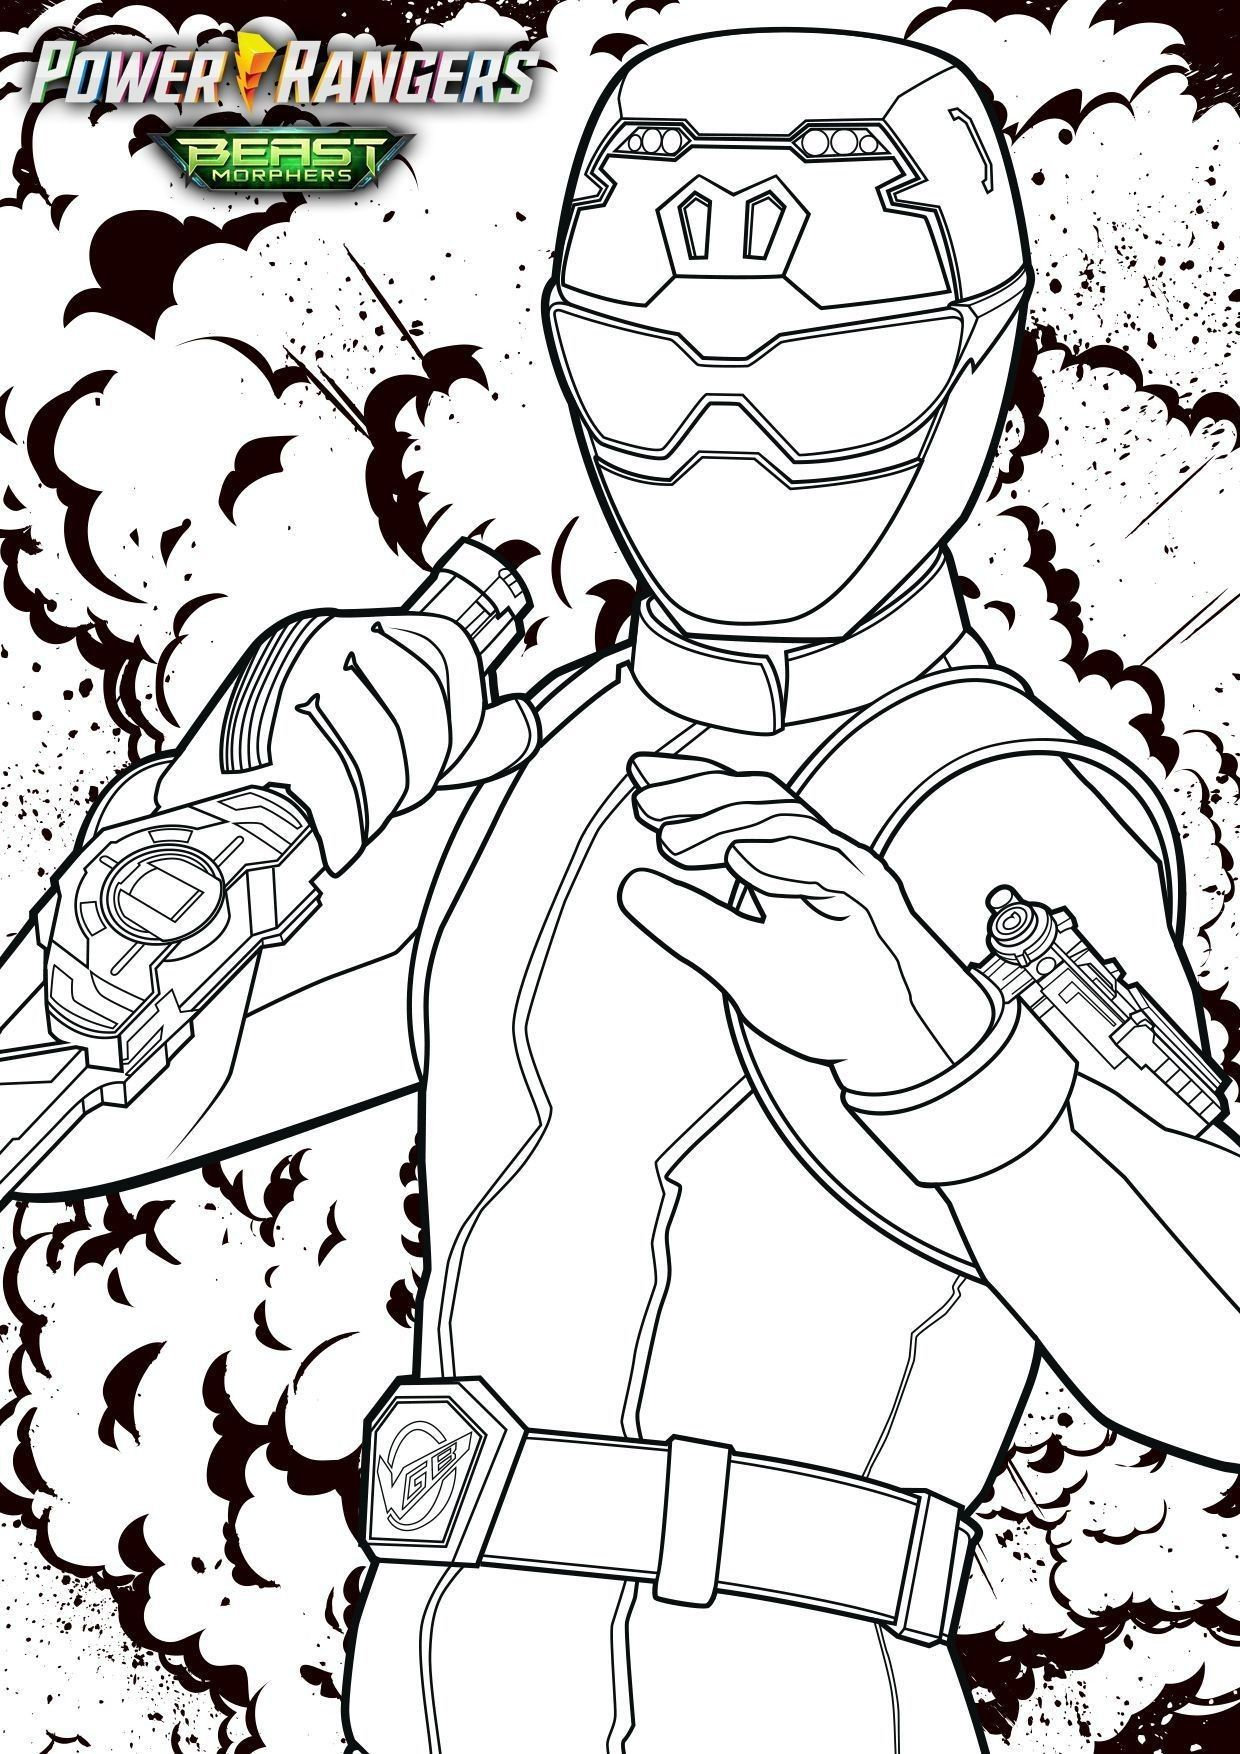 Coloriages Power Rangers Beast Morphers A Imprimer Power Rangers Beast Morphers Coloriage Power Rangers Power Rangers Coloriage Dessin Anime